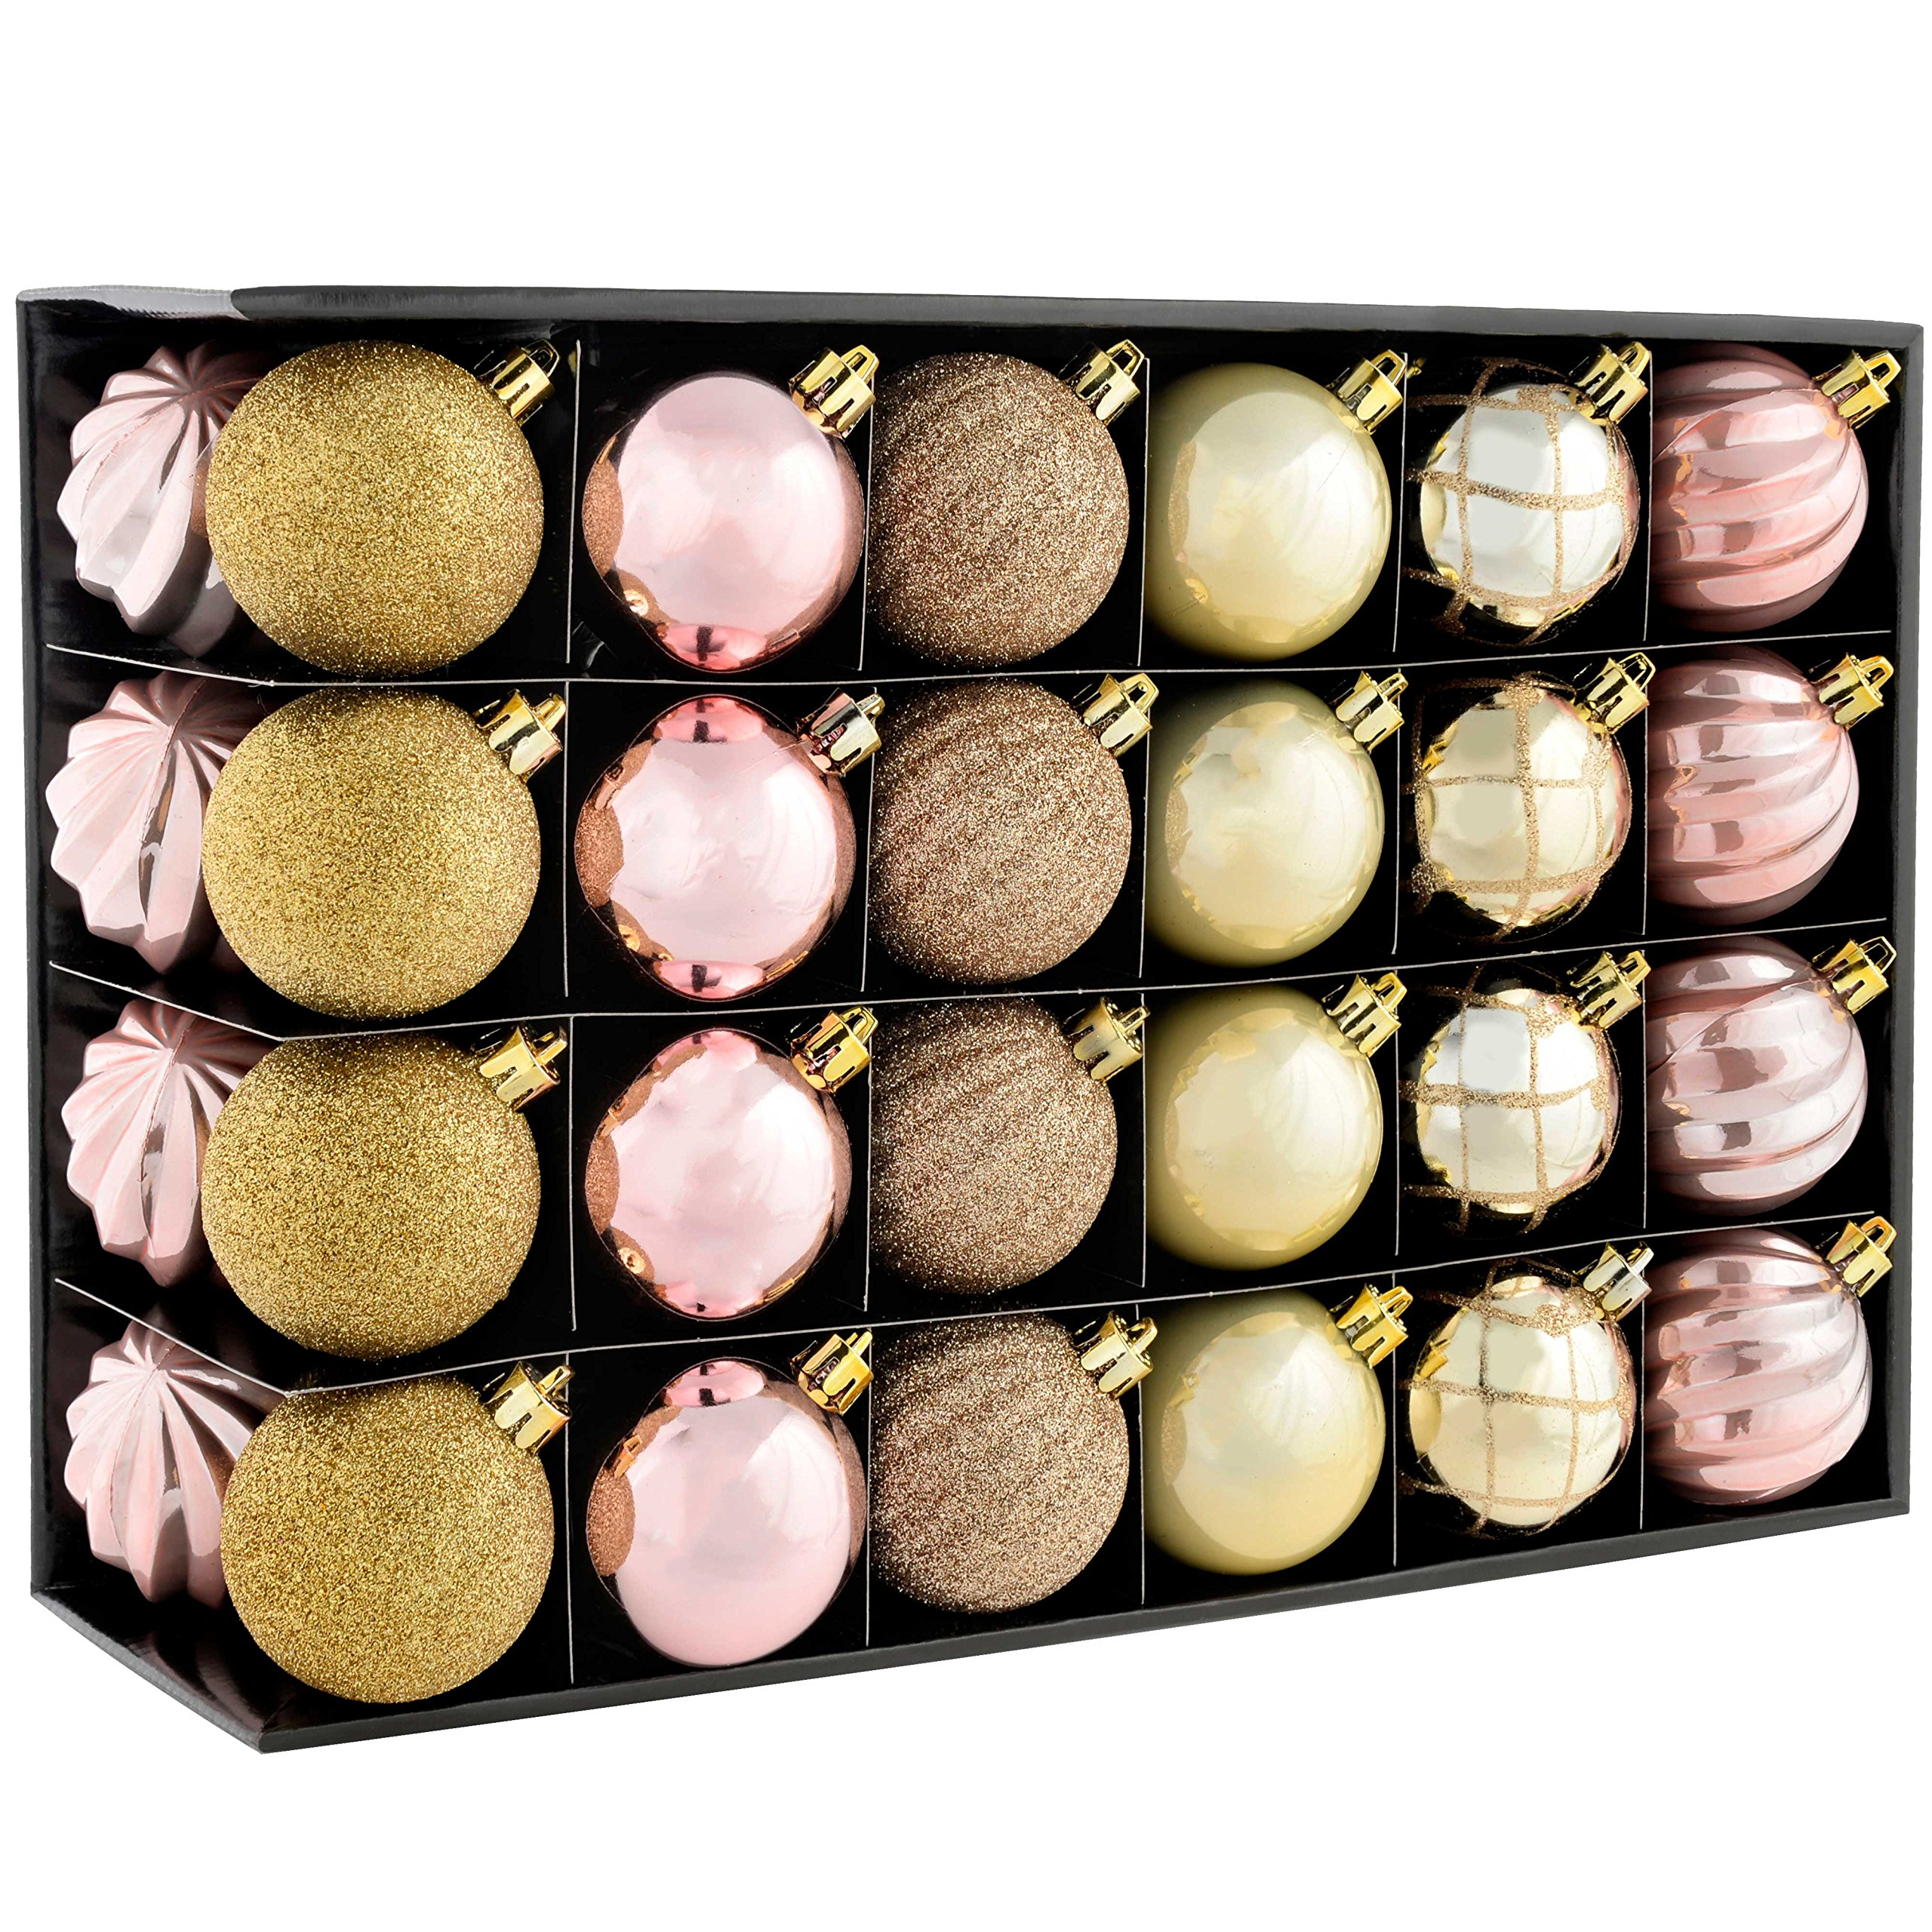 WeRChristmas Shatterproof Luxury Christmas Tree Baubles, 48-Piece - Champagne/Mauve